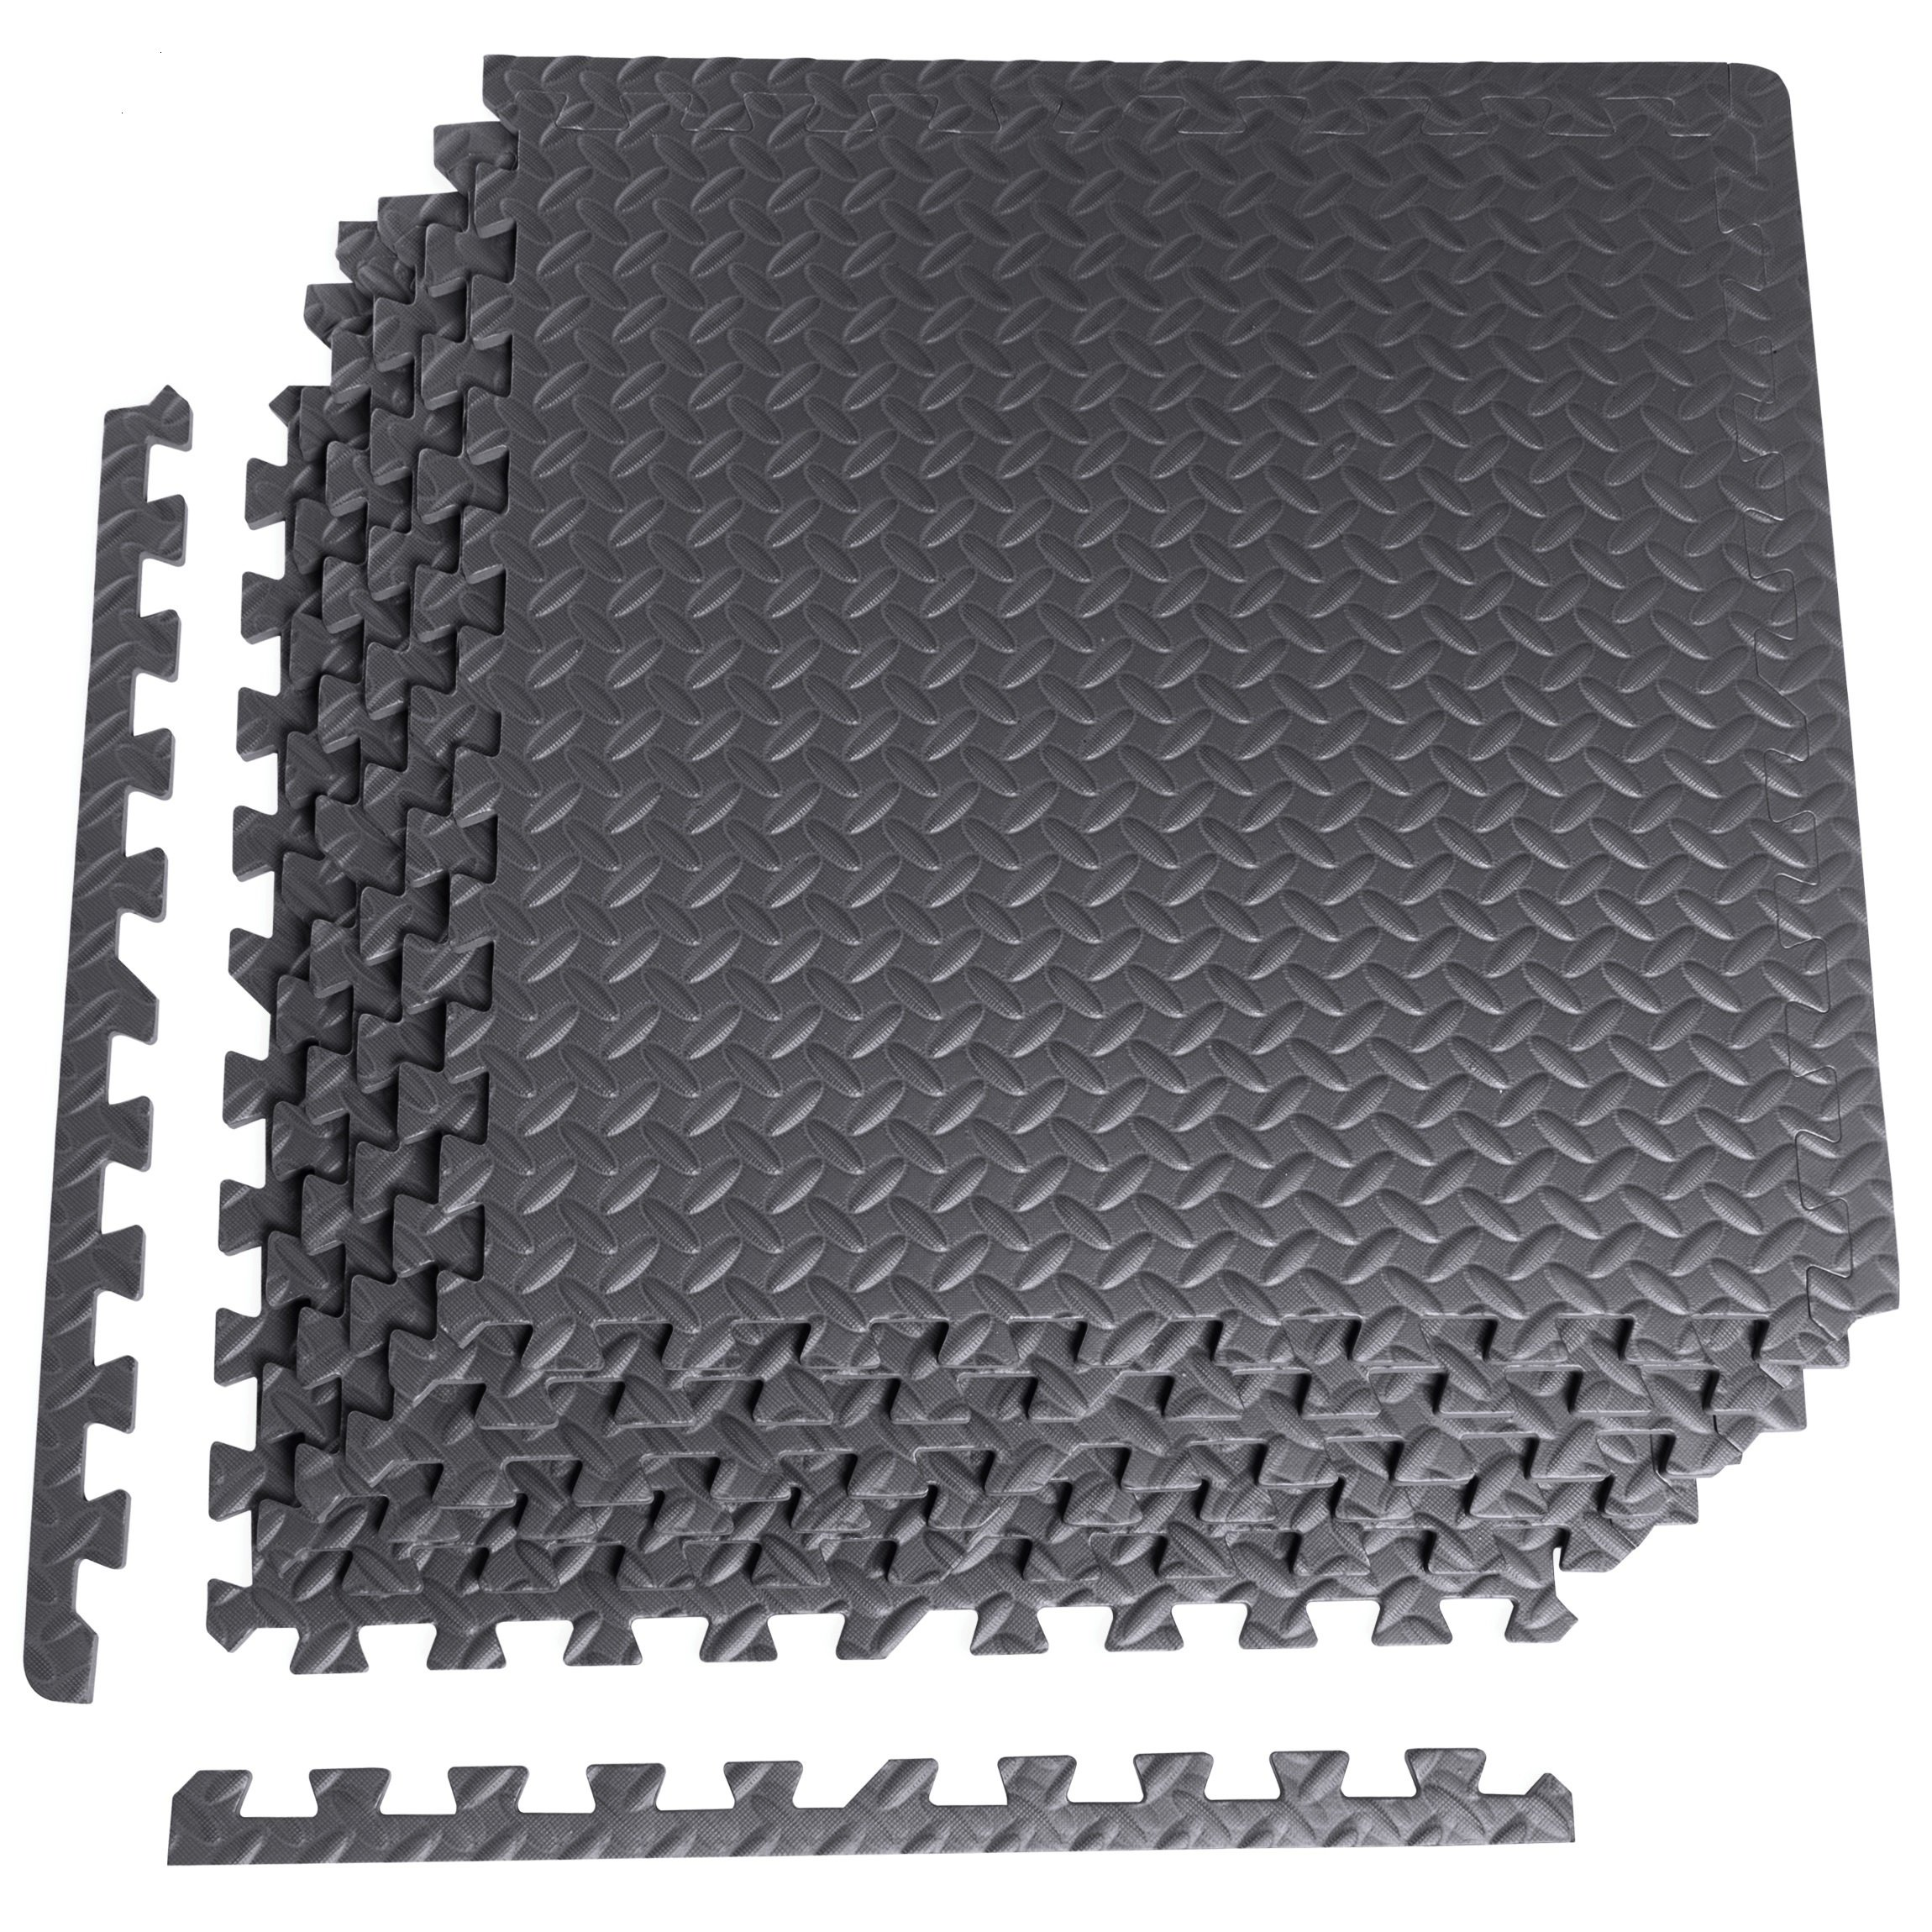 Home Exercise Equipment Crossword Clue: Rubber Floor Mat For Home Barbell Equipment Puzzle Gym